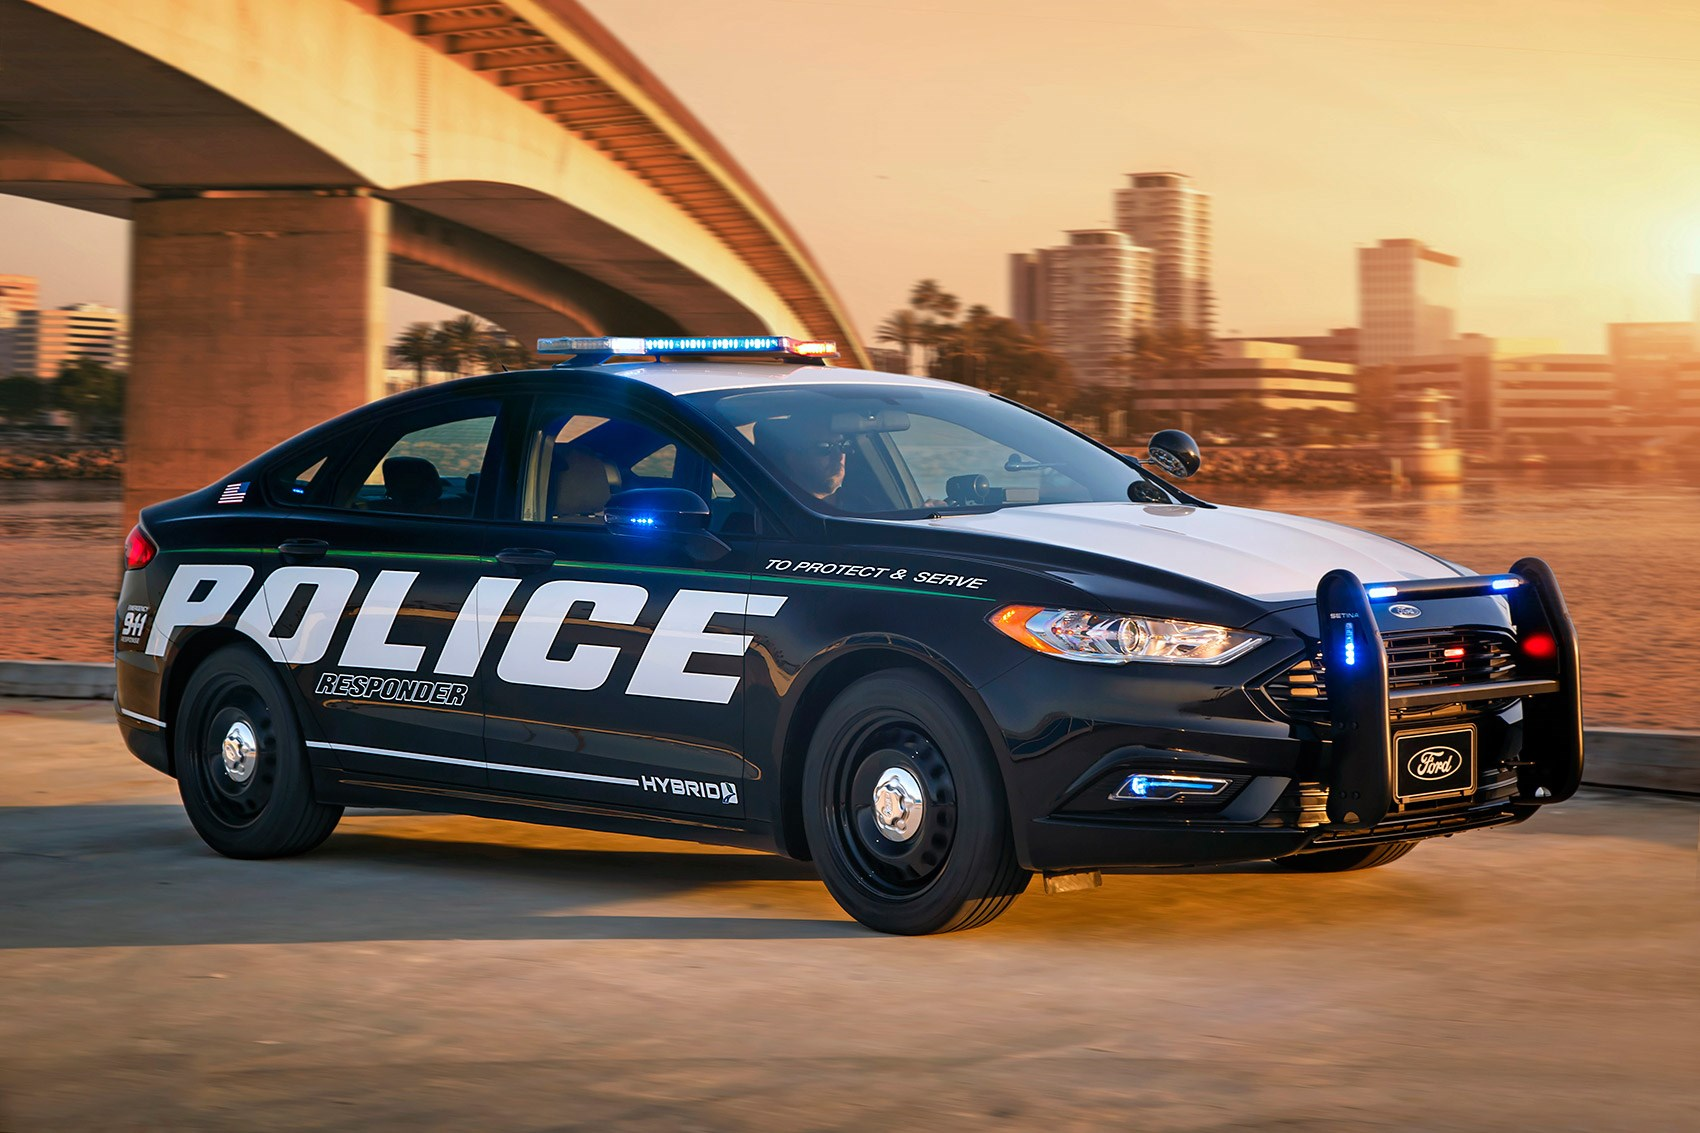 ford police responder hybrid sedan unveiled at new york auto show by car magazine. Black Bedroom Furniture Sets. Home Design Ideas